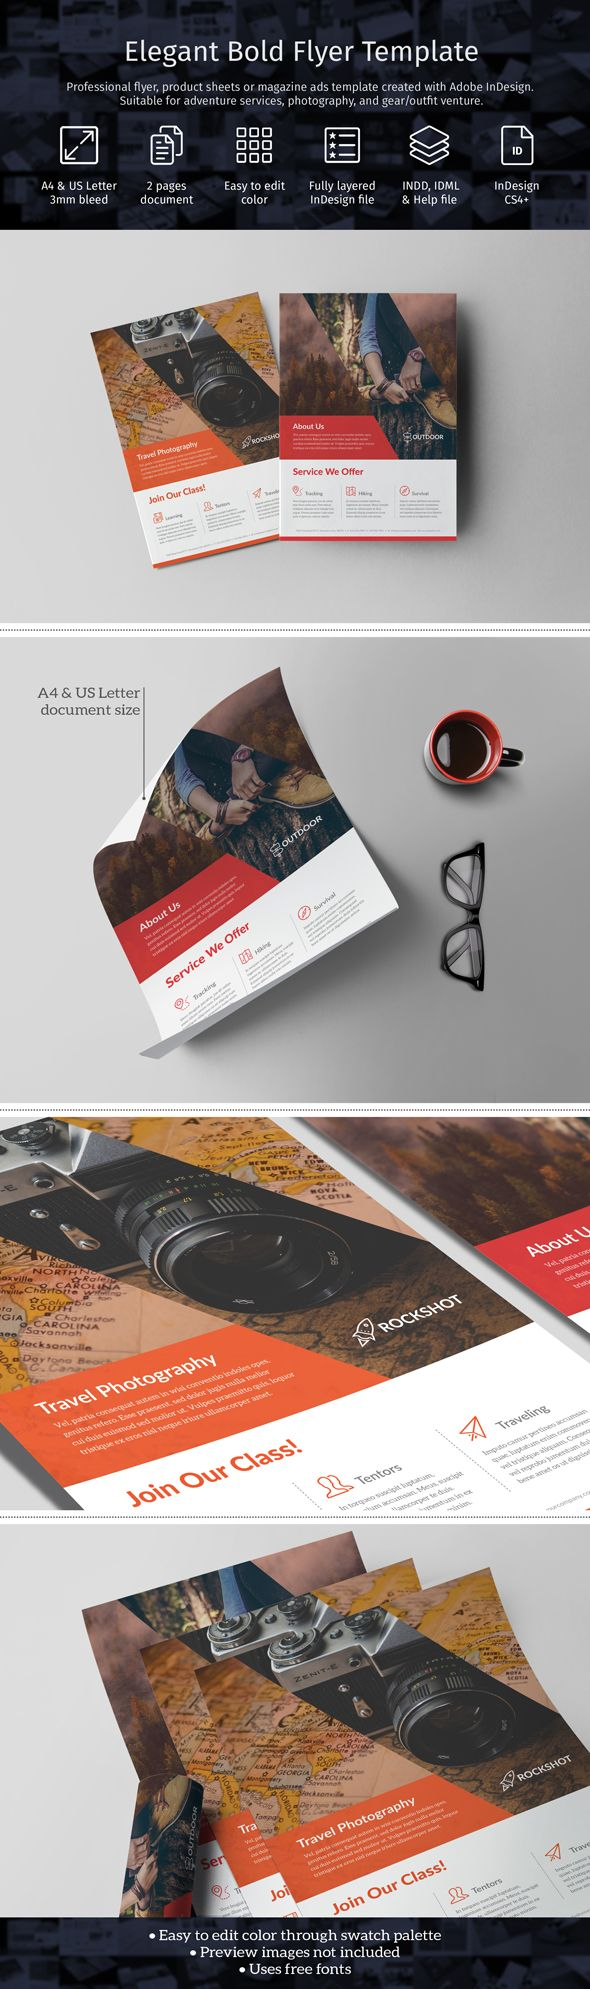 Professional bold flyer/product sheets/magazine ads template created with Adobe InDesign. Perfect for outdoor sport, adventure, photography, and gear/outfit venture. Template available in A4 & US Letter size [crmrkt.com/MmBaV].